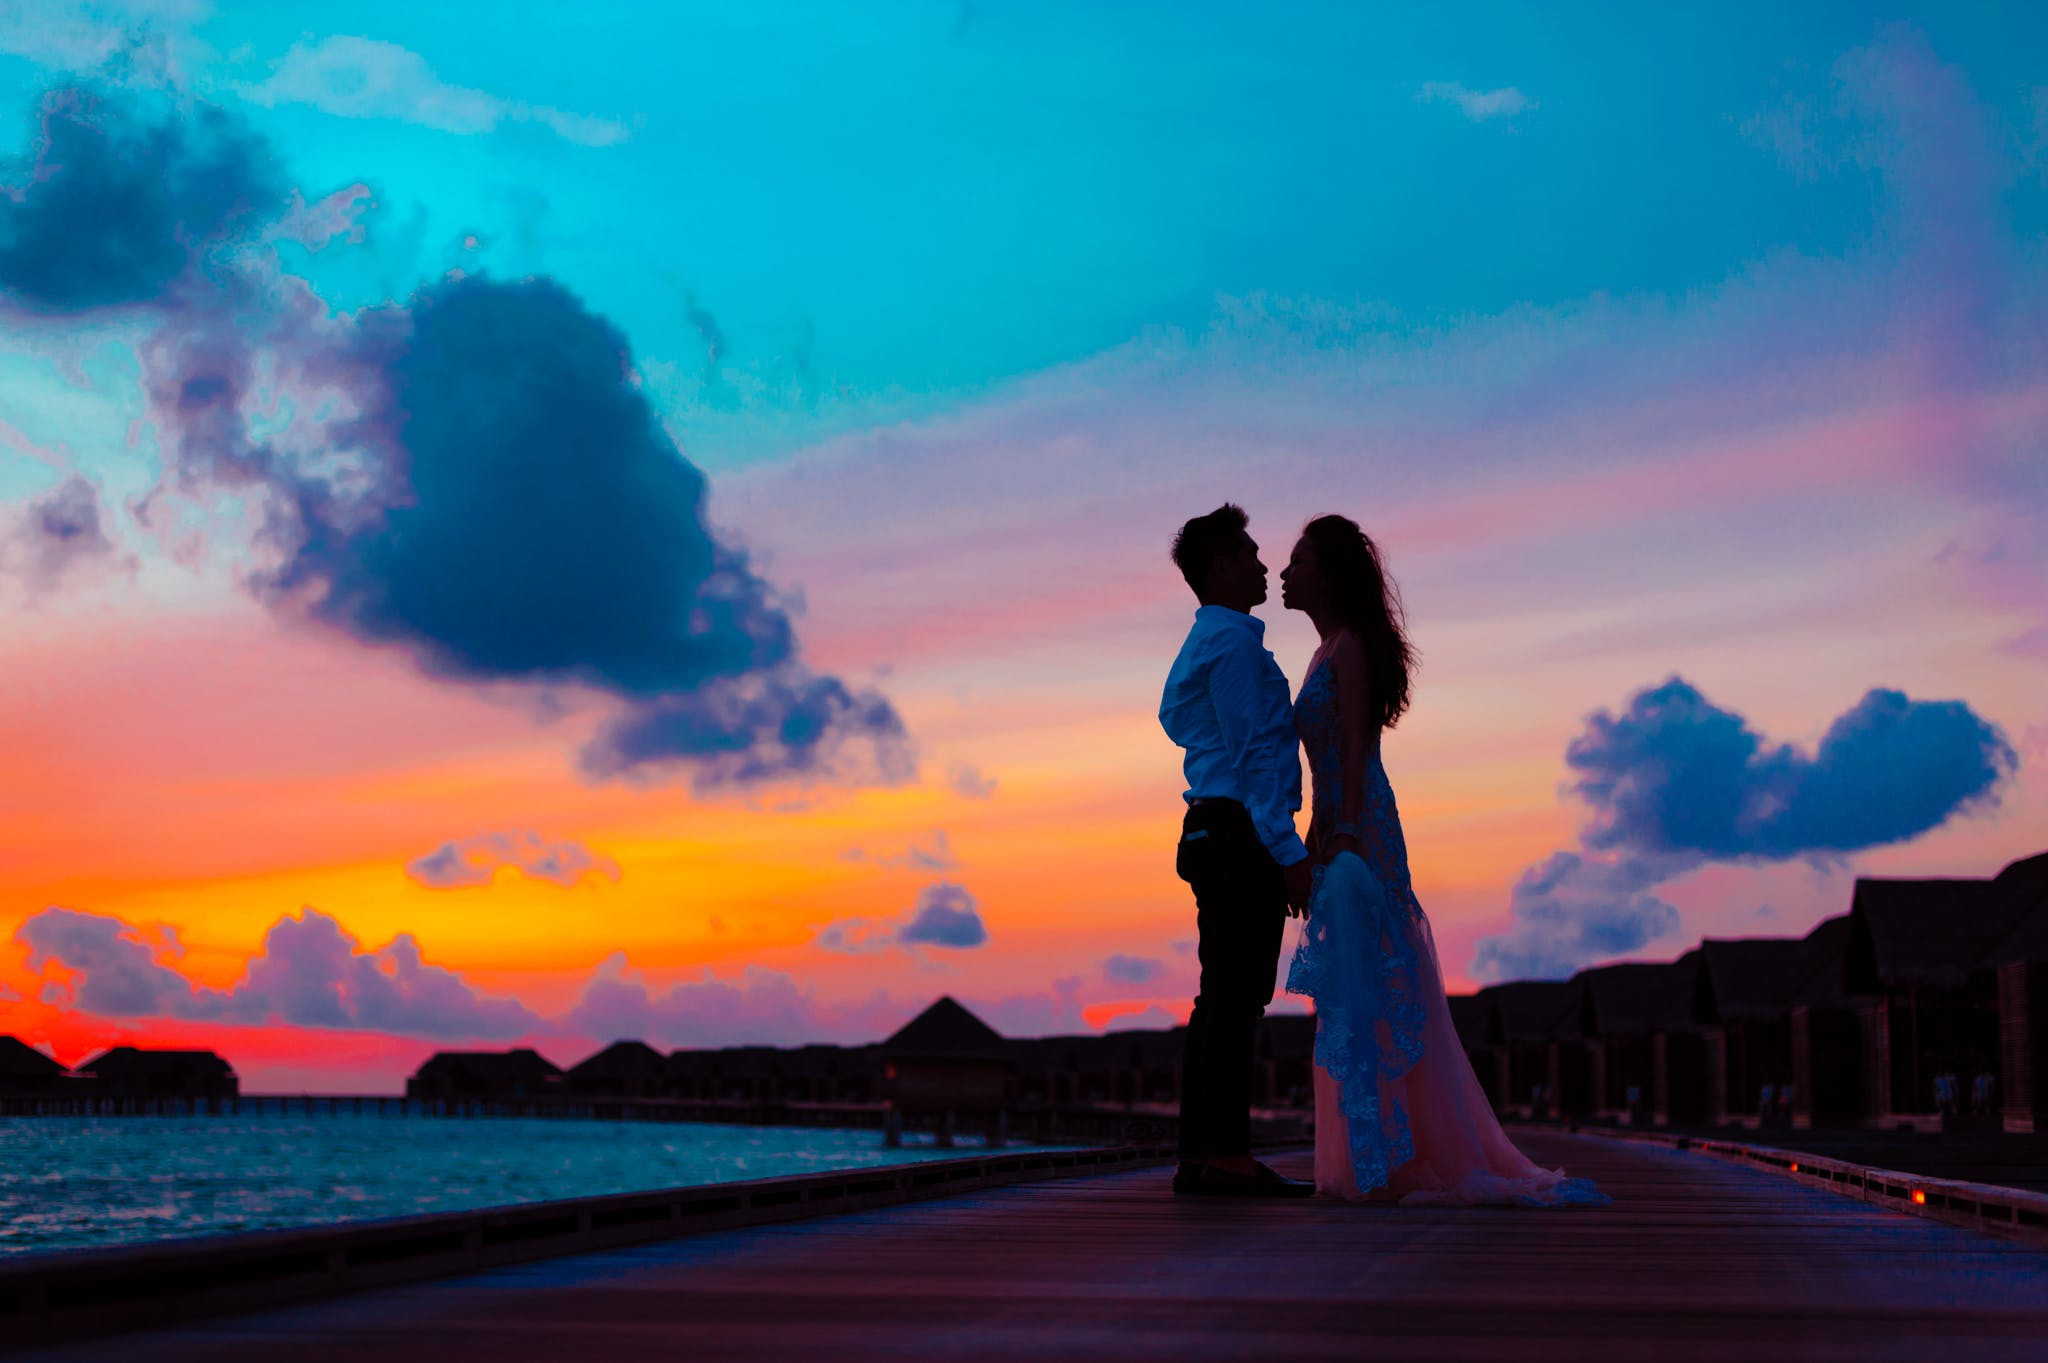 Man and Woman Wearing Wedding Attire Standing on Sea Dock during Golden Hour